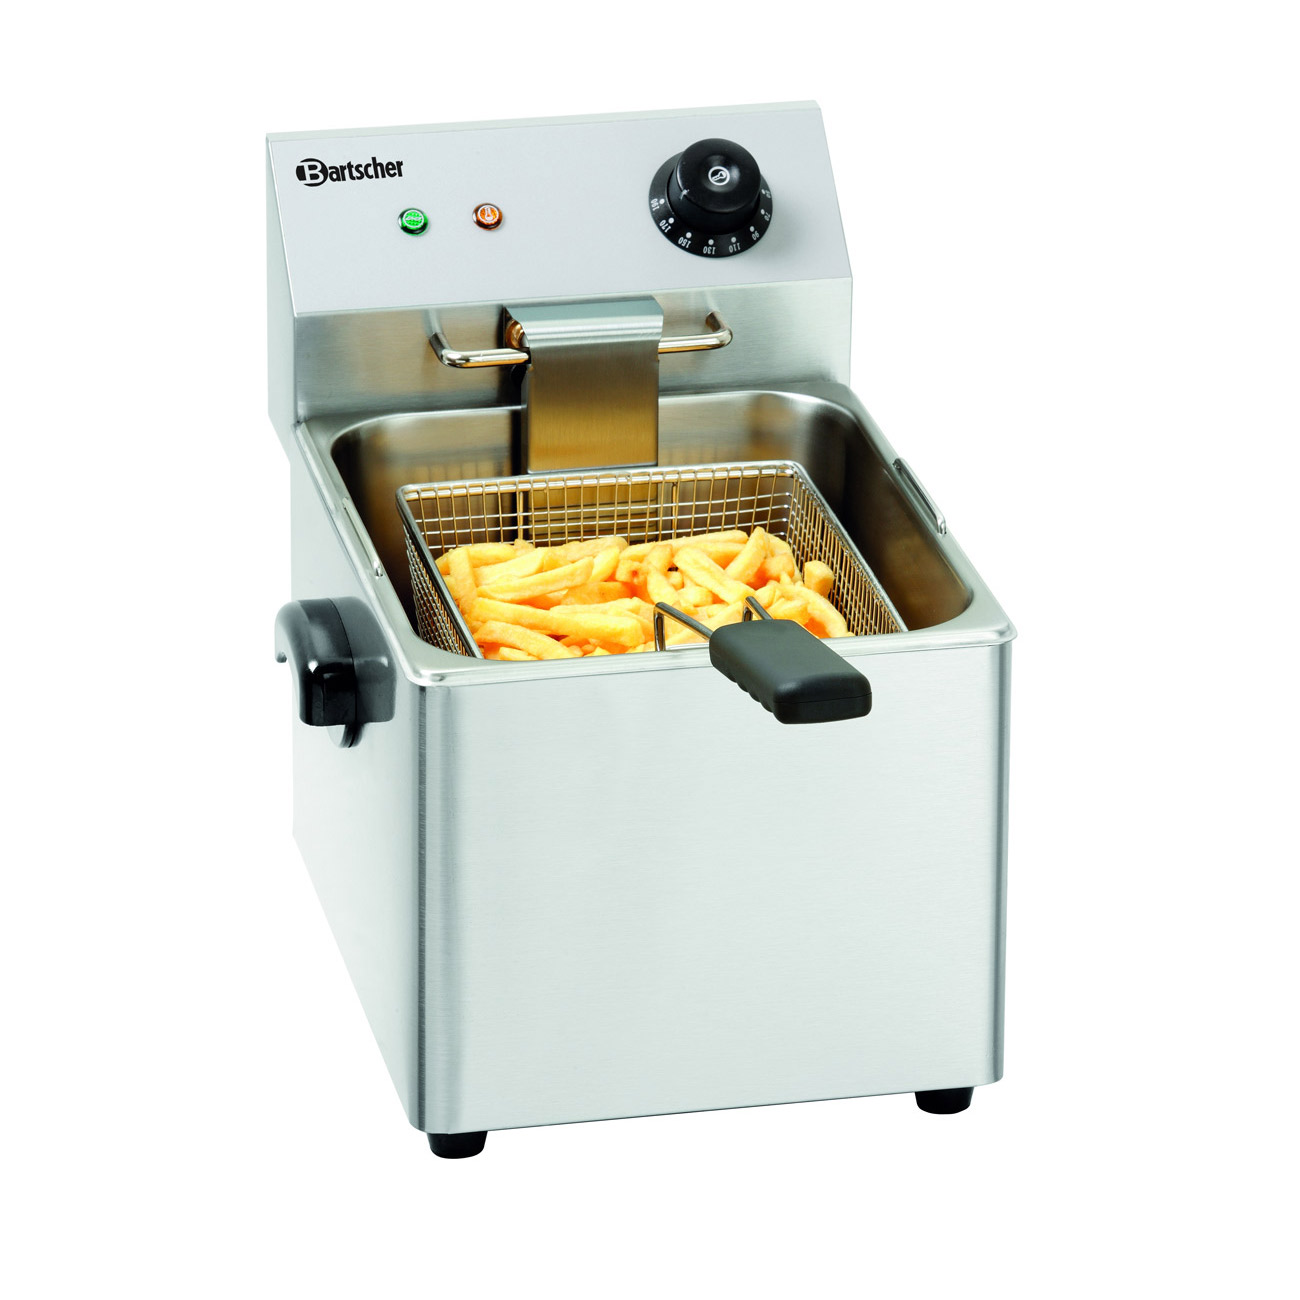 Outdoor Küche Mit Friteuse Bartscher Fritteuse Quotsnack Iii Quot Siltec Gastro Shop